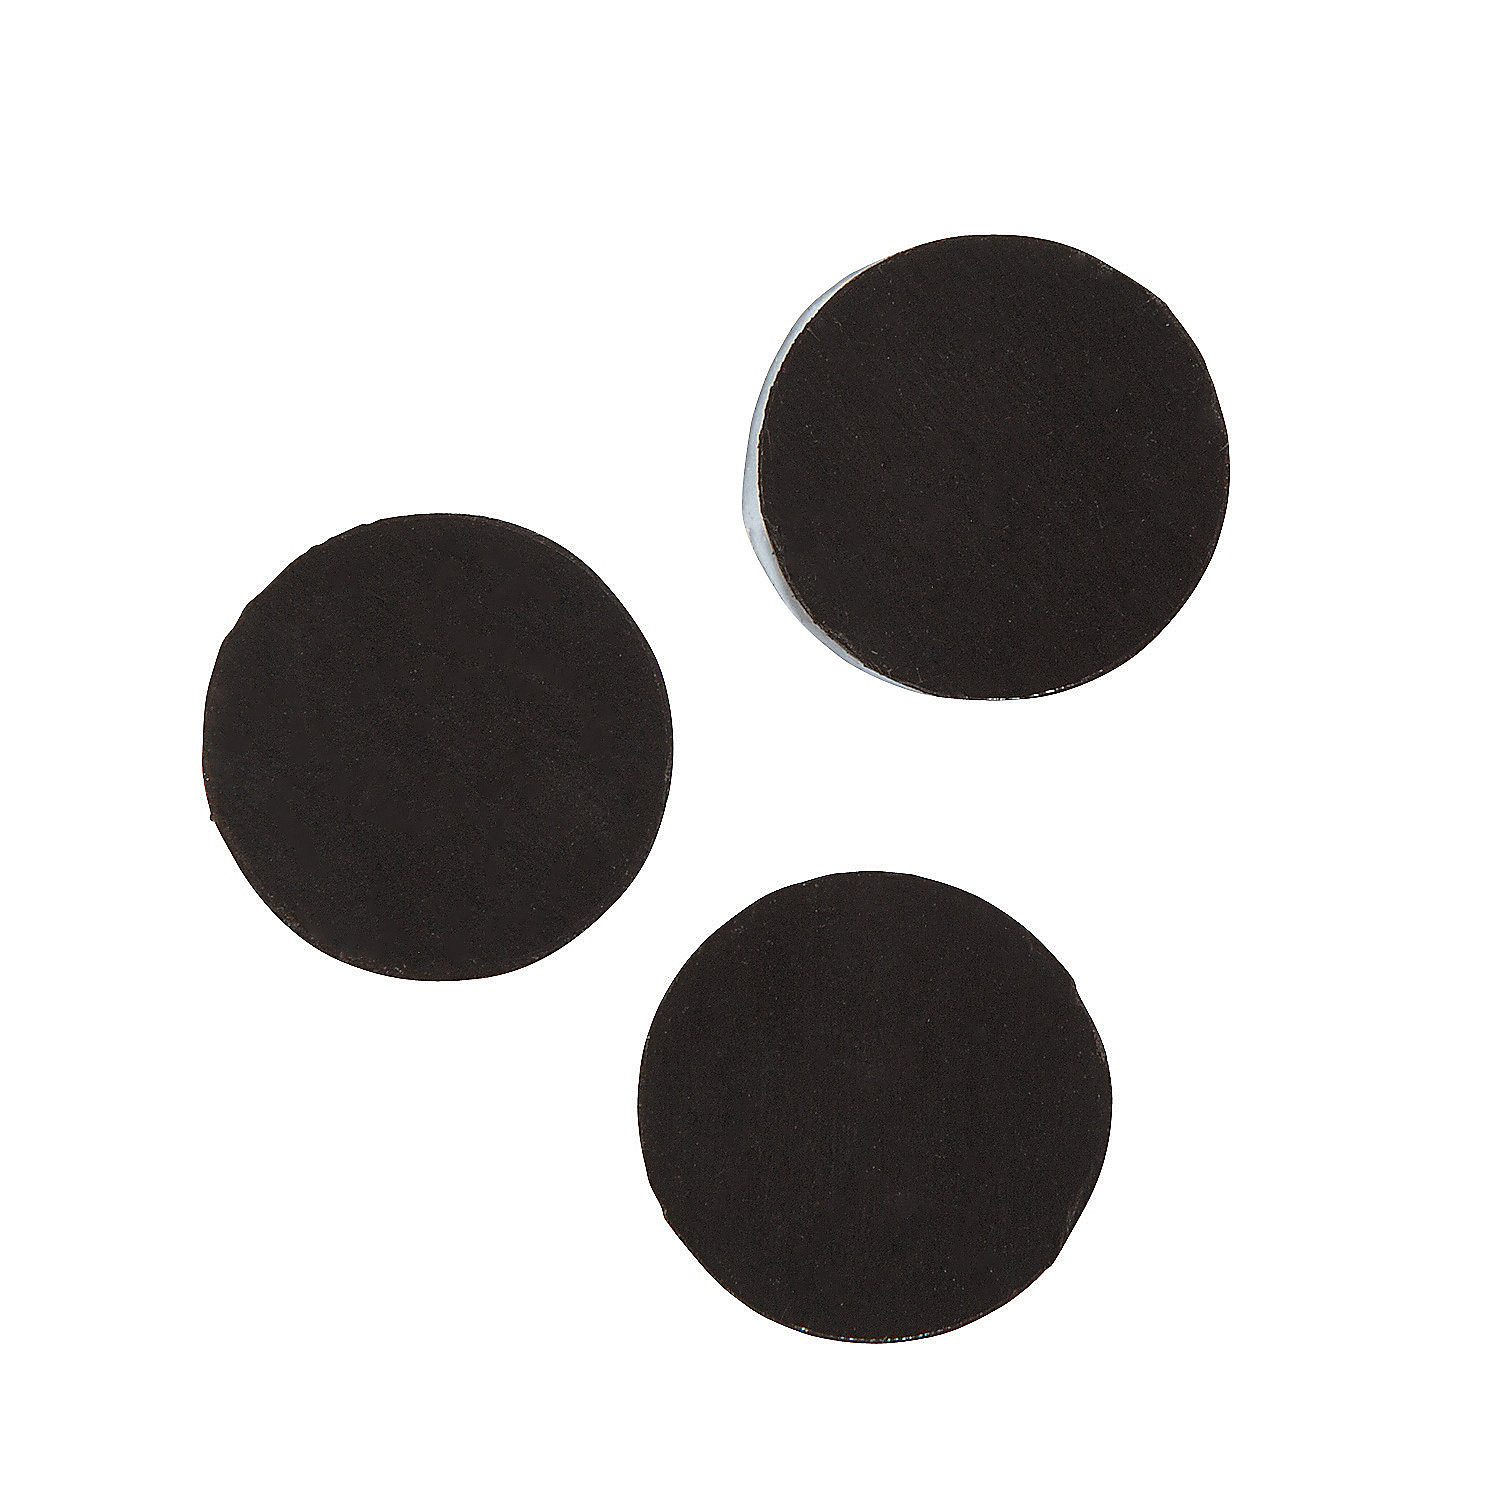 Round magnets craft tools essentials craft supplies for Small round magnets crafts